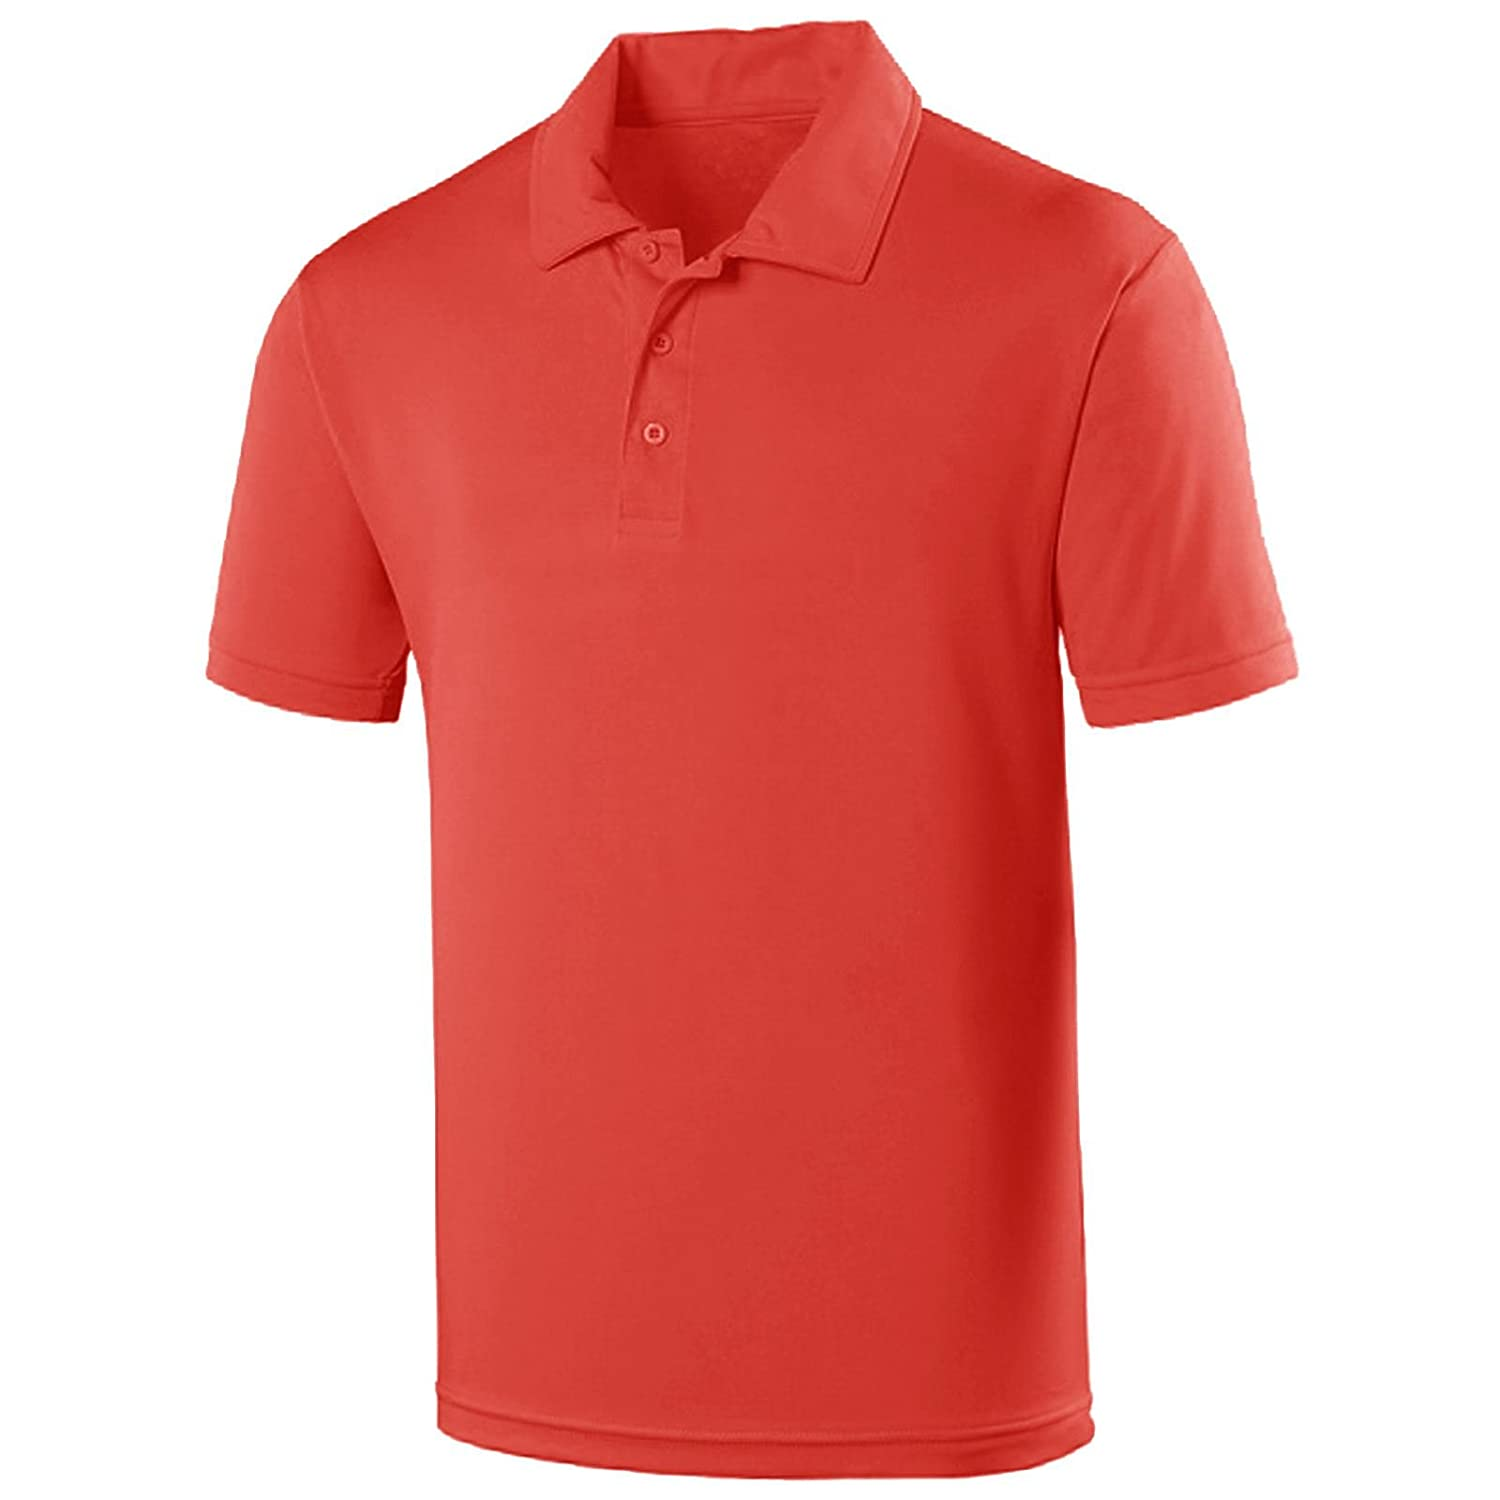 Kids Polo T-Shirts Fruit of The Loom Boys Girls Collared PE School Uniform Tops Quality Mode